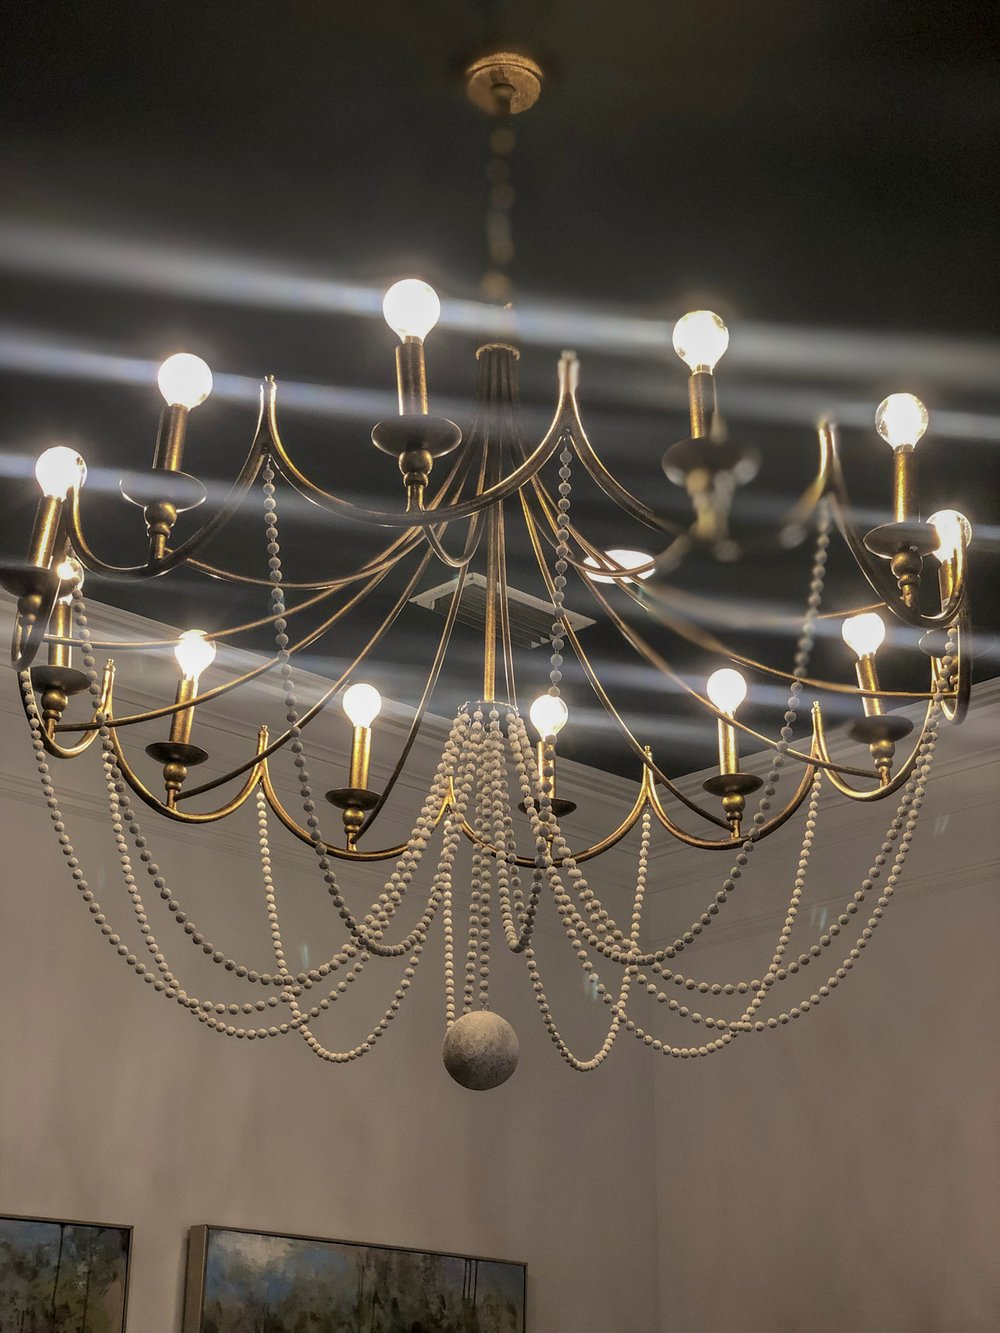 The beautiful, modern hand-painted chandelier in the Avenue! :)